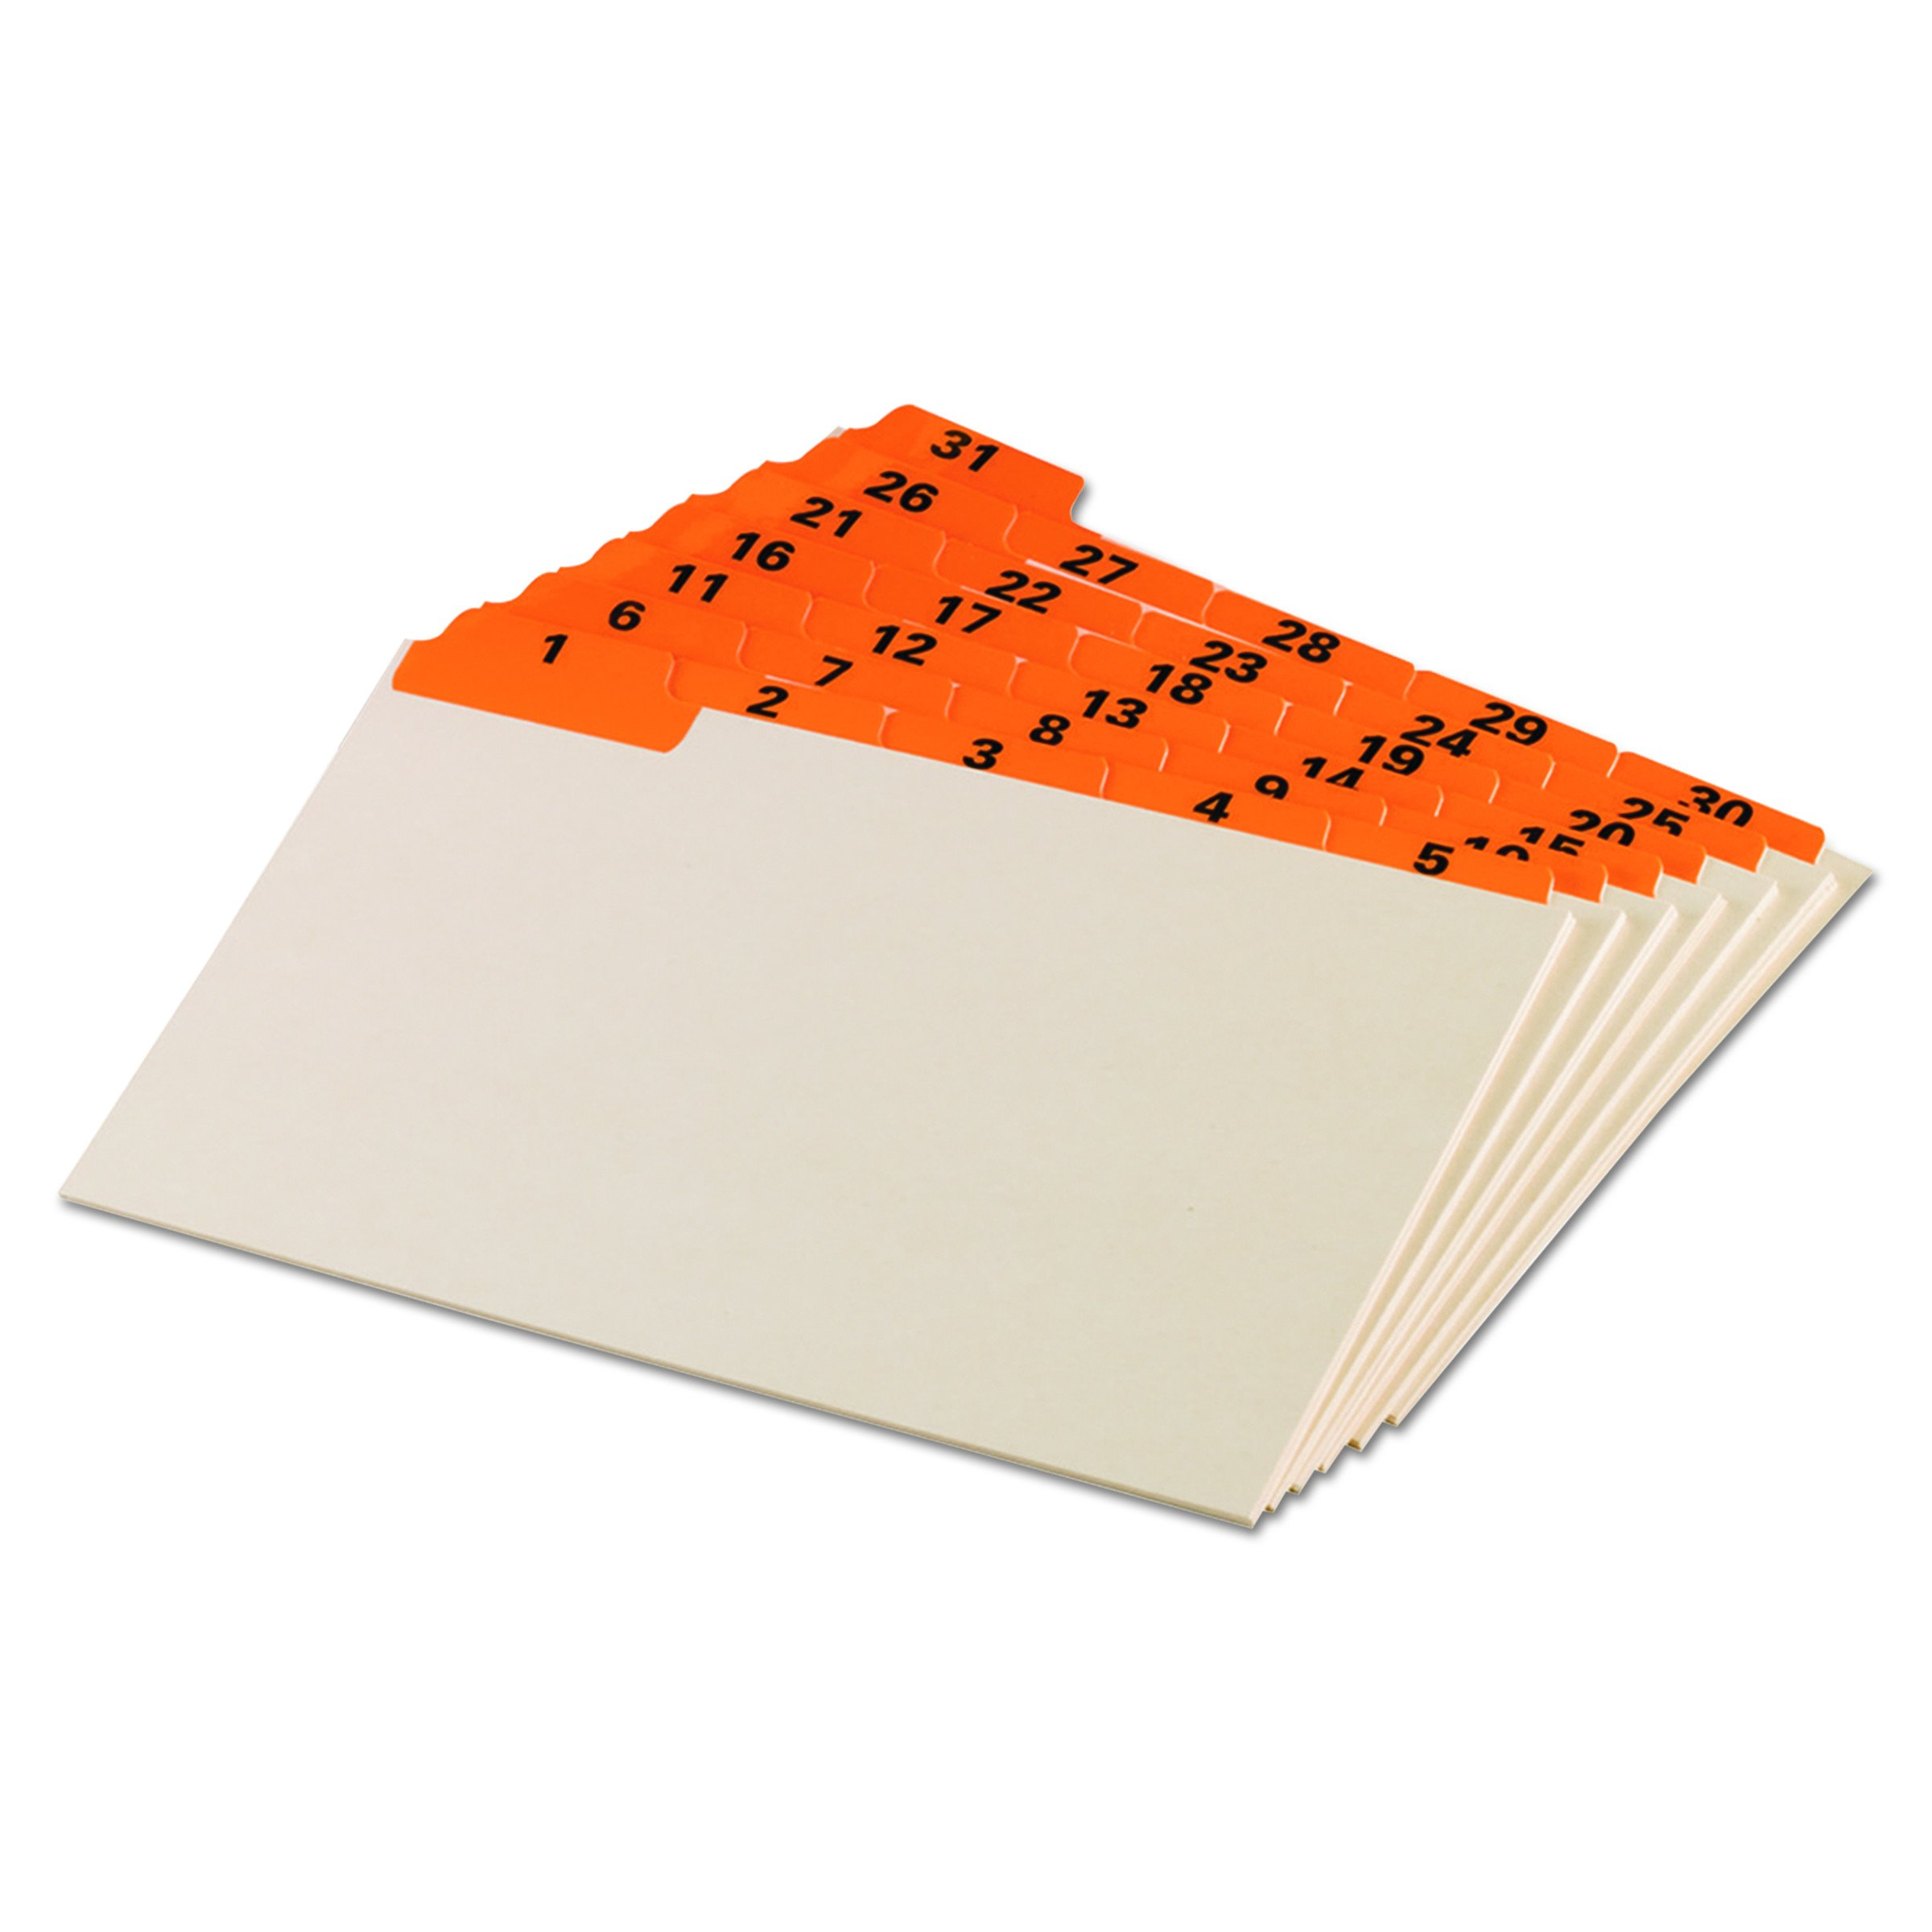 Oxford 05832 Laminated Tab Index Card Guides, Daily, 1/5 Tab, Manila, 5 x 8 (Set of 31) by Oxford